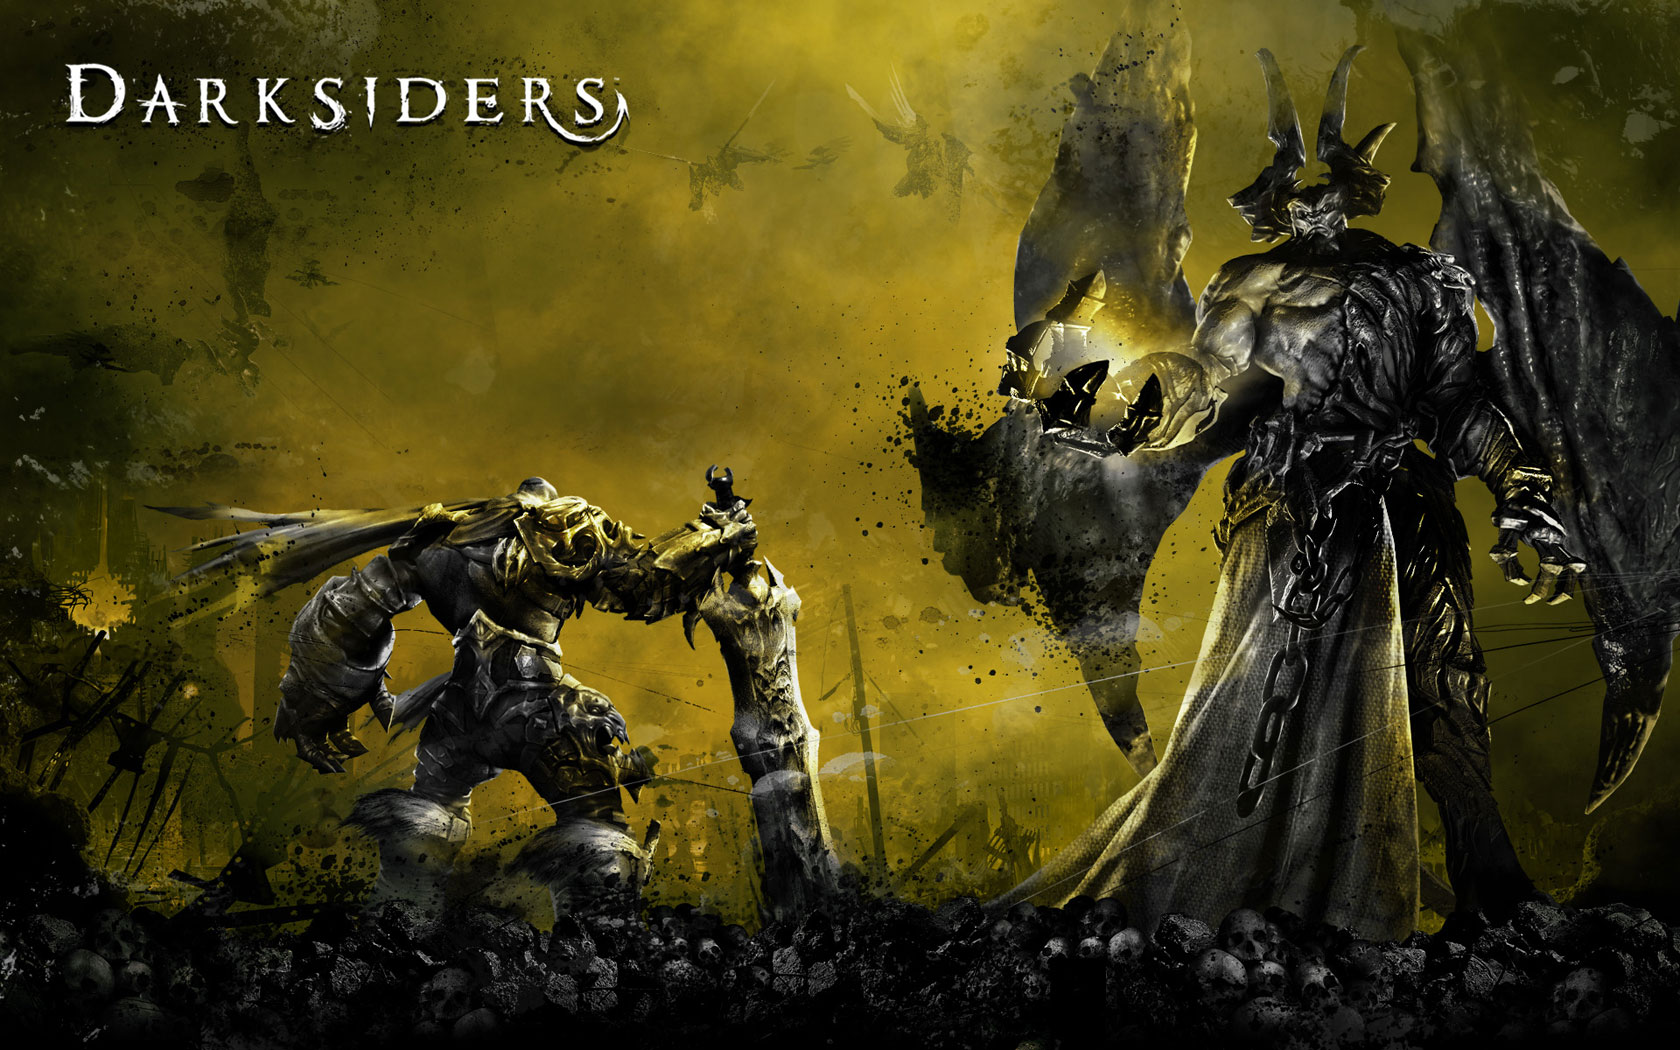 Darksiders War Wallpaper By: Darksiders Wallpaper 1080p